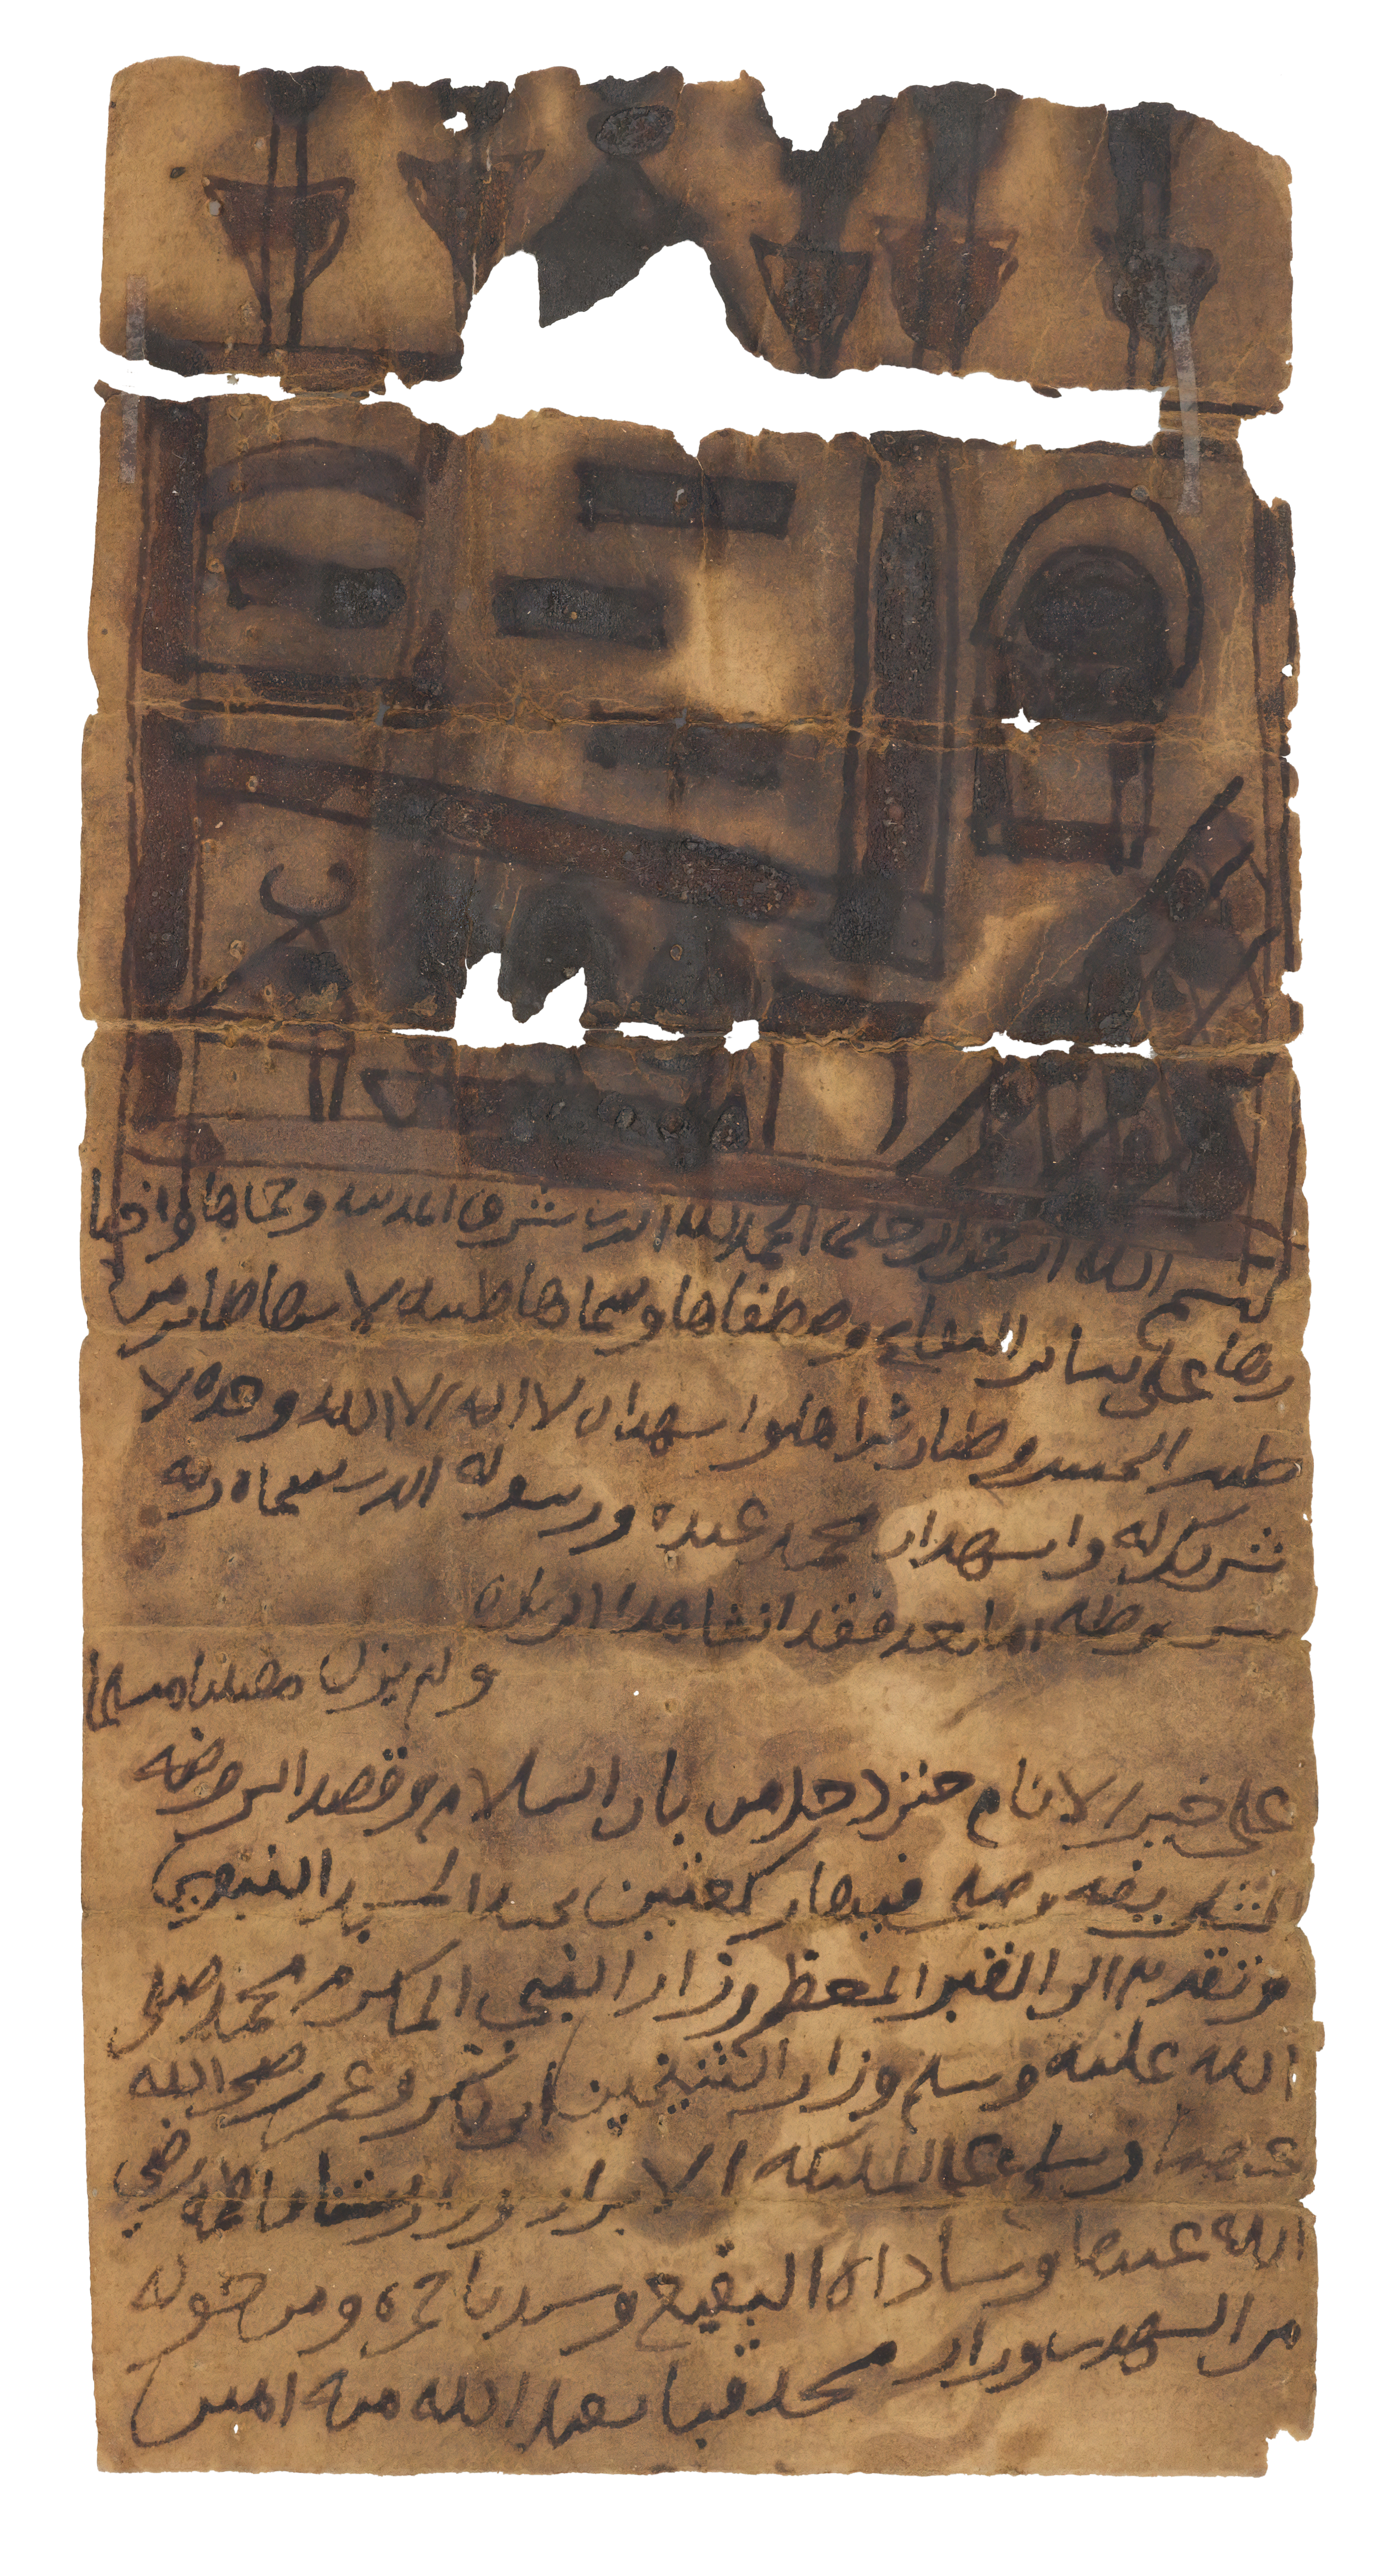 Section from a pilgrimage scroll